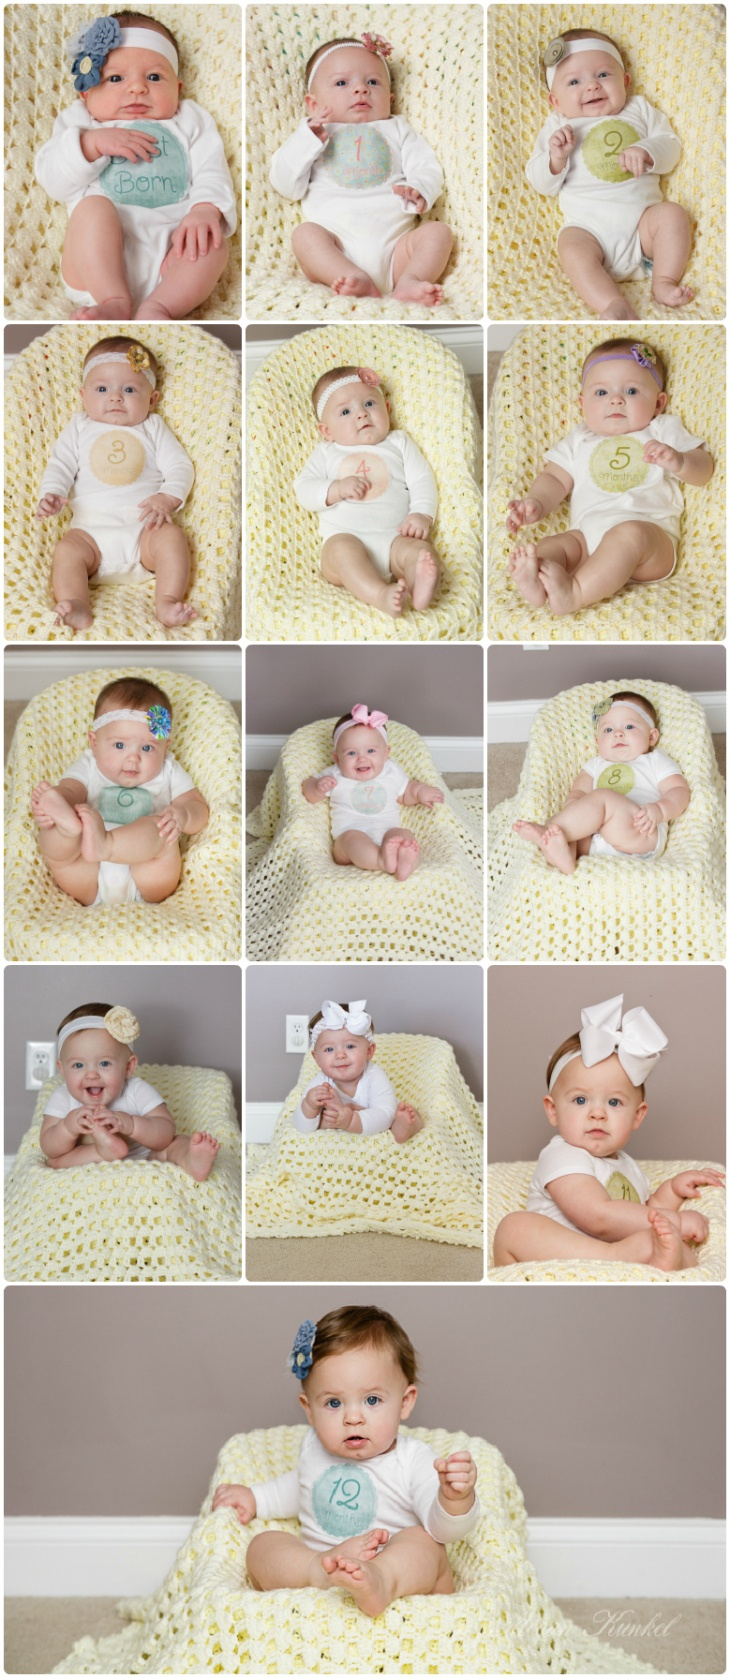 Monthly photos, newborn-12 months. Great way to capture their growth!